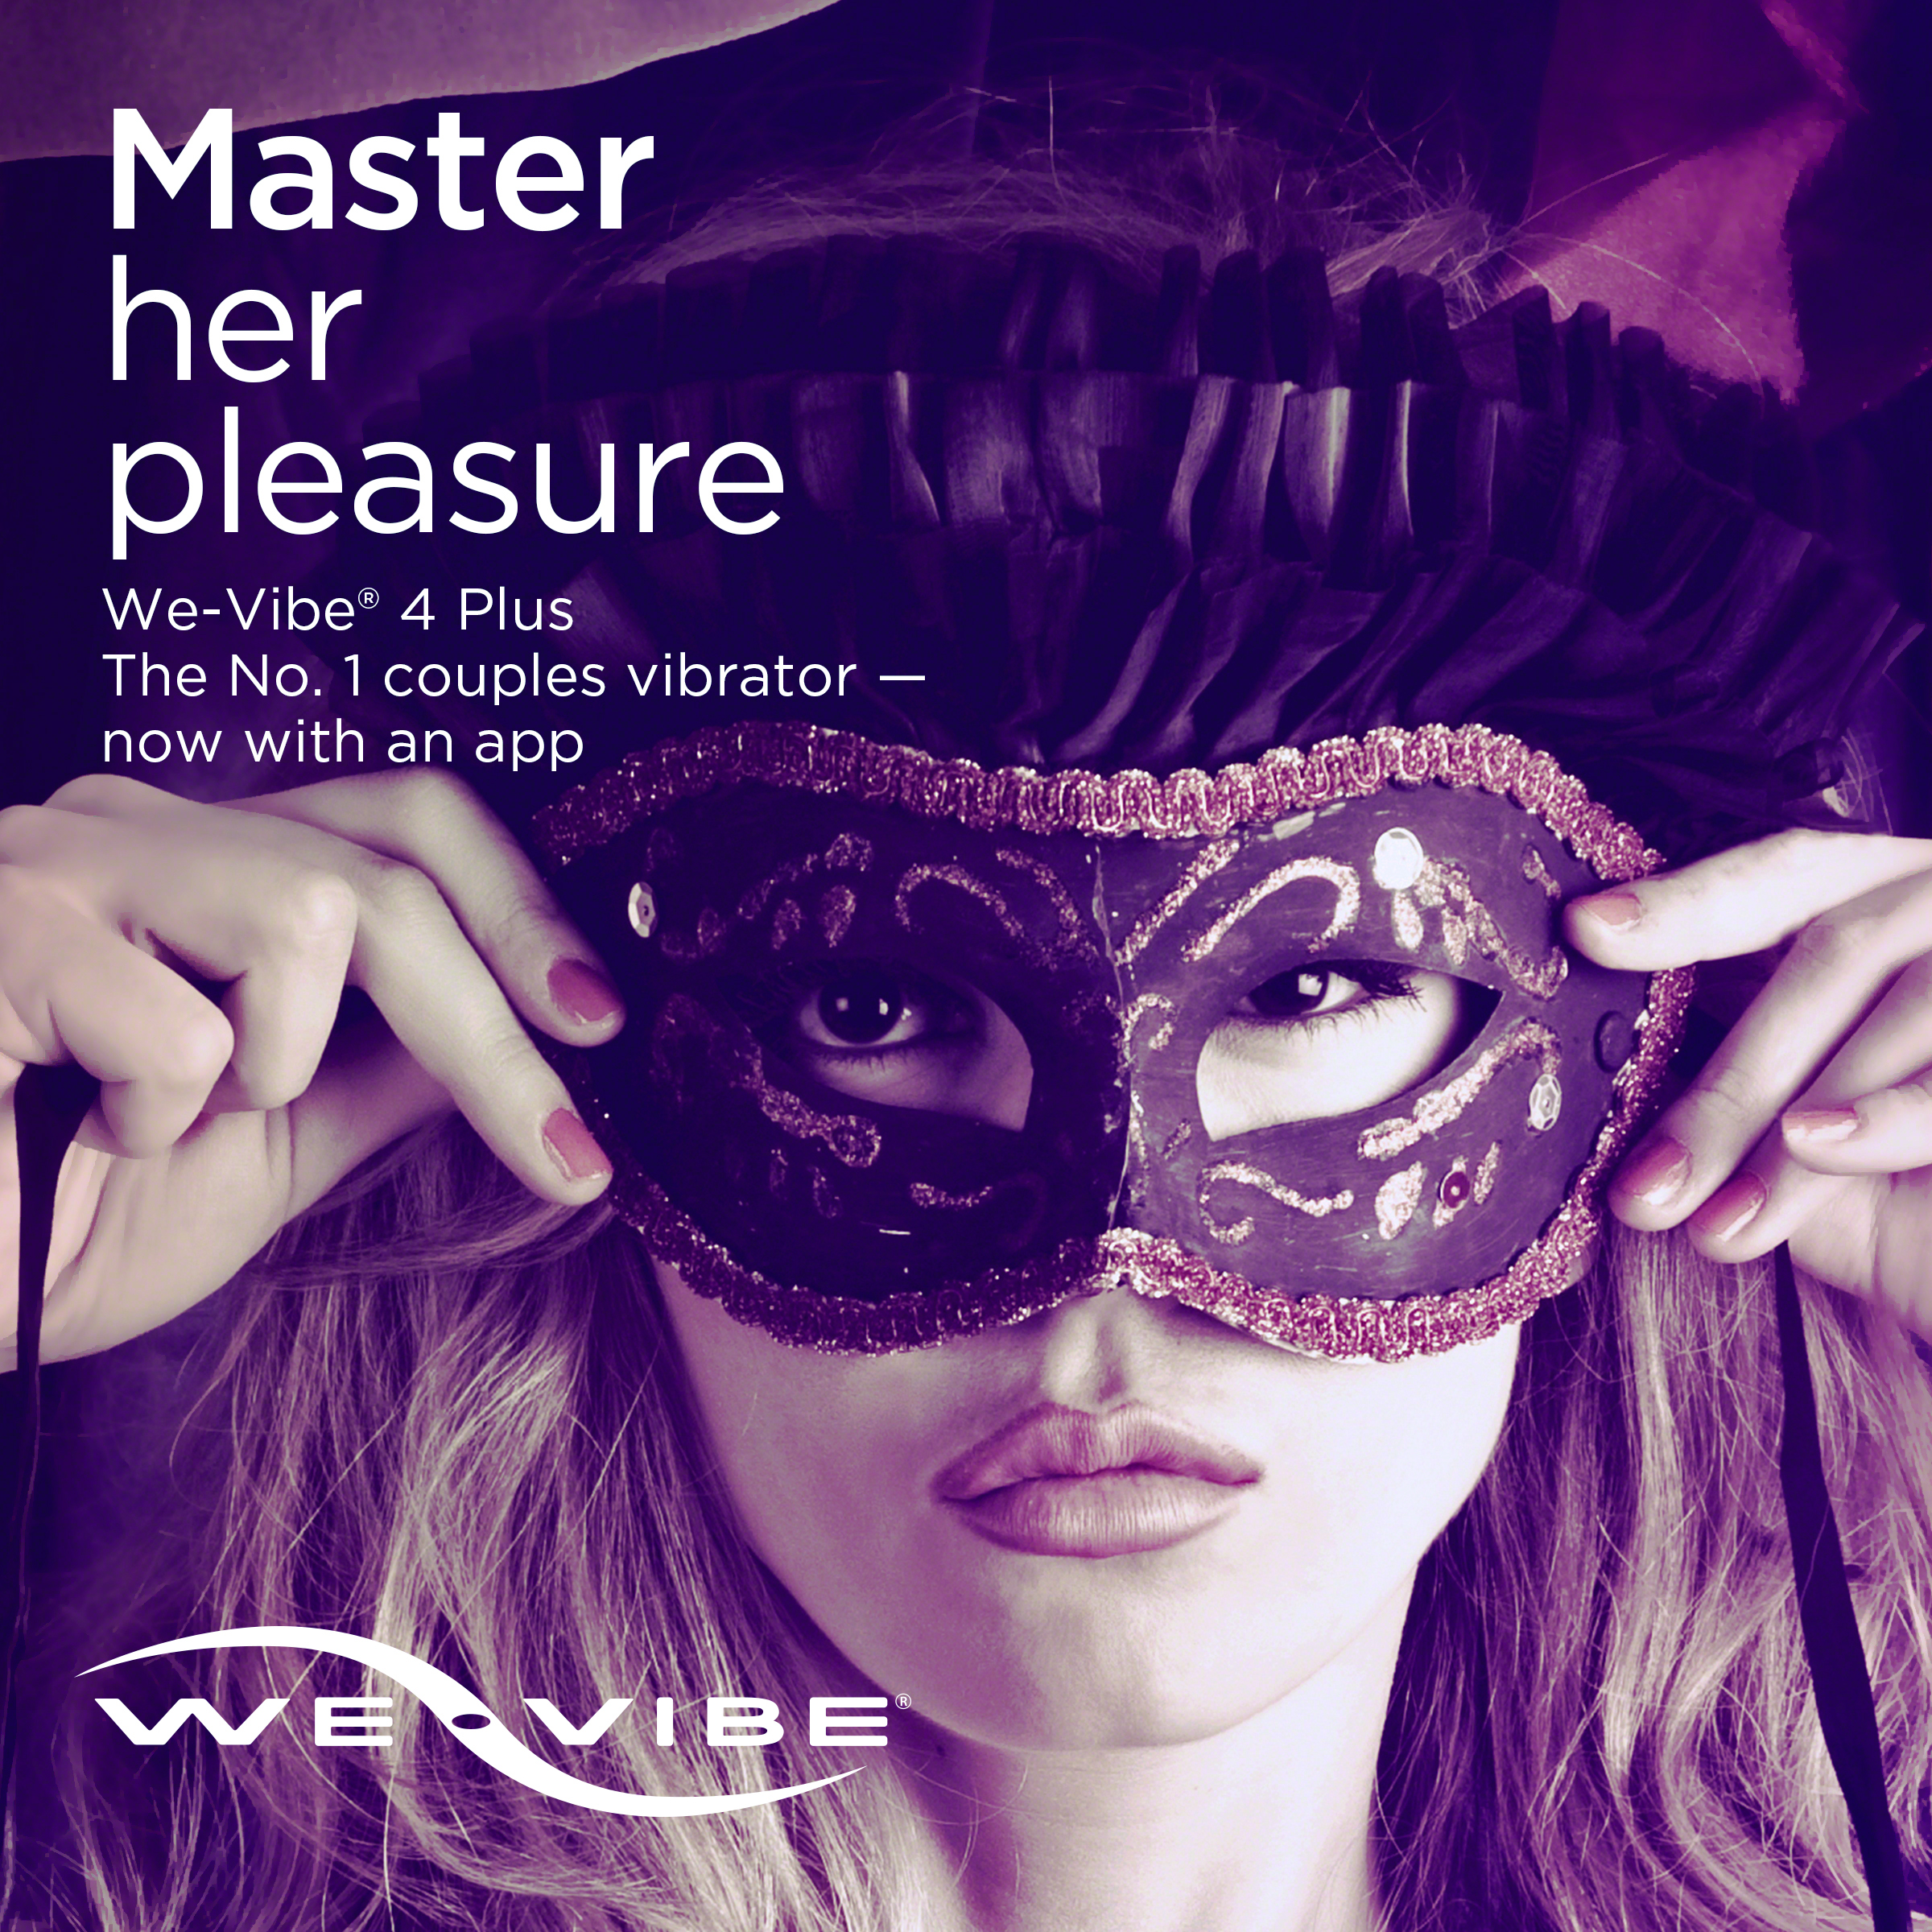 http://presskit.we-vibe.com/retailers/downloads/WV4_Plus/Banner_Ads/WeVibe4%20Plus-Master-her-pleasure-2400-wm.jpg